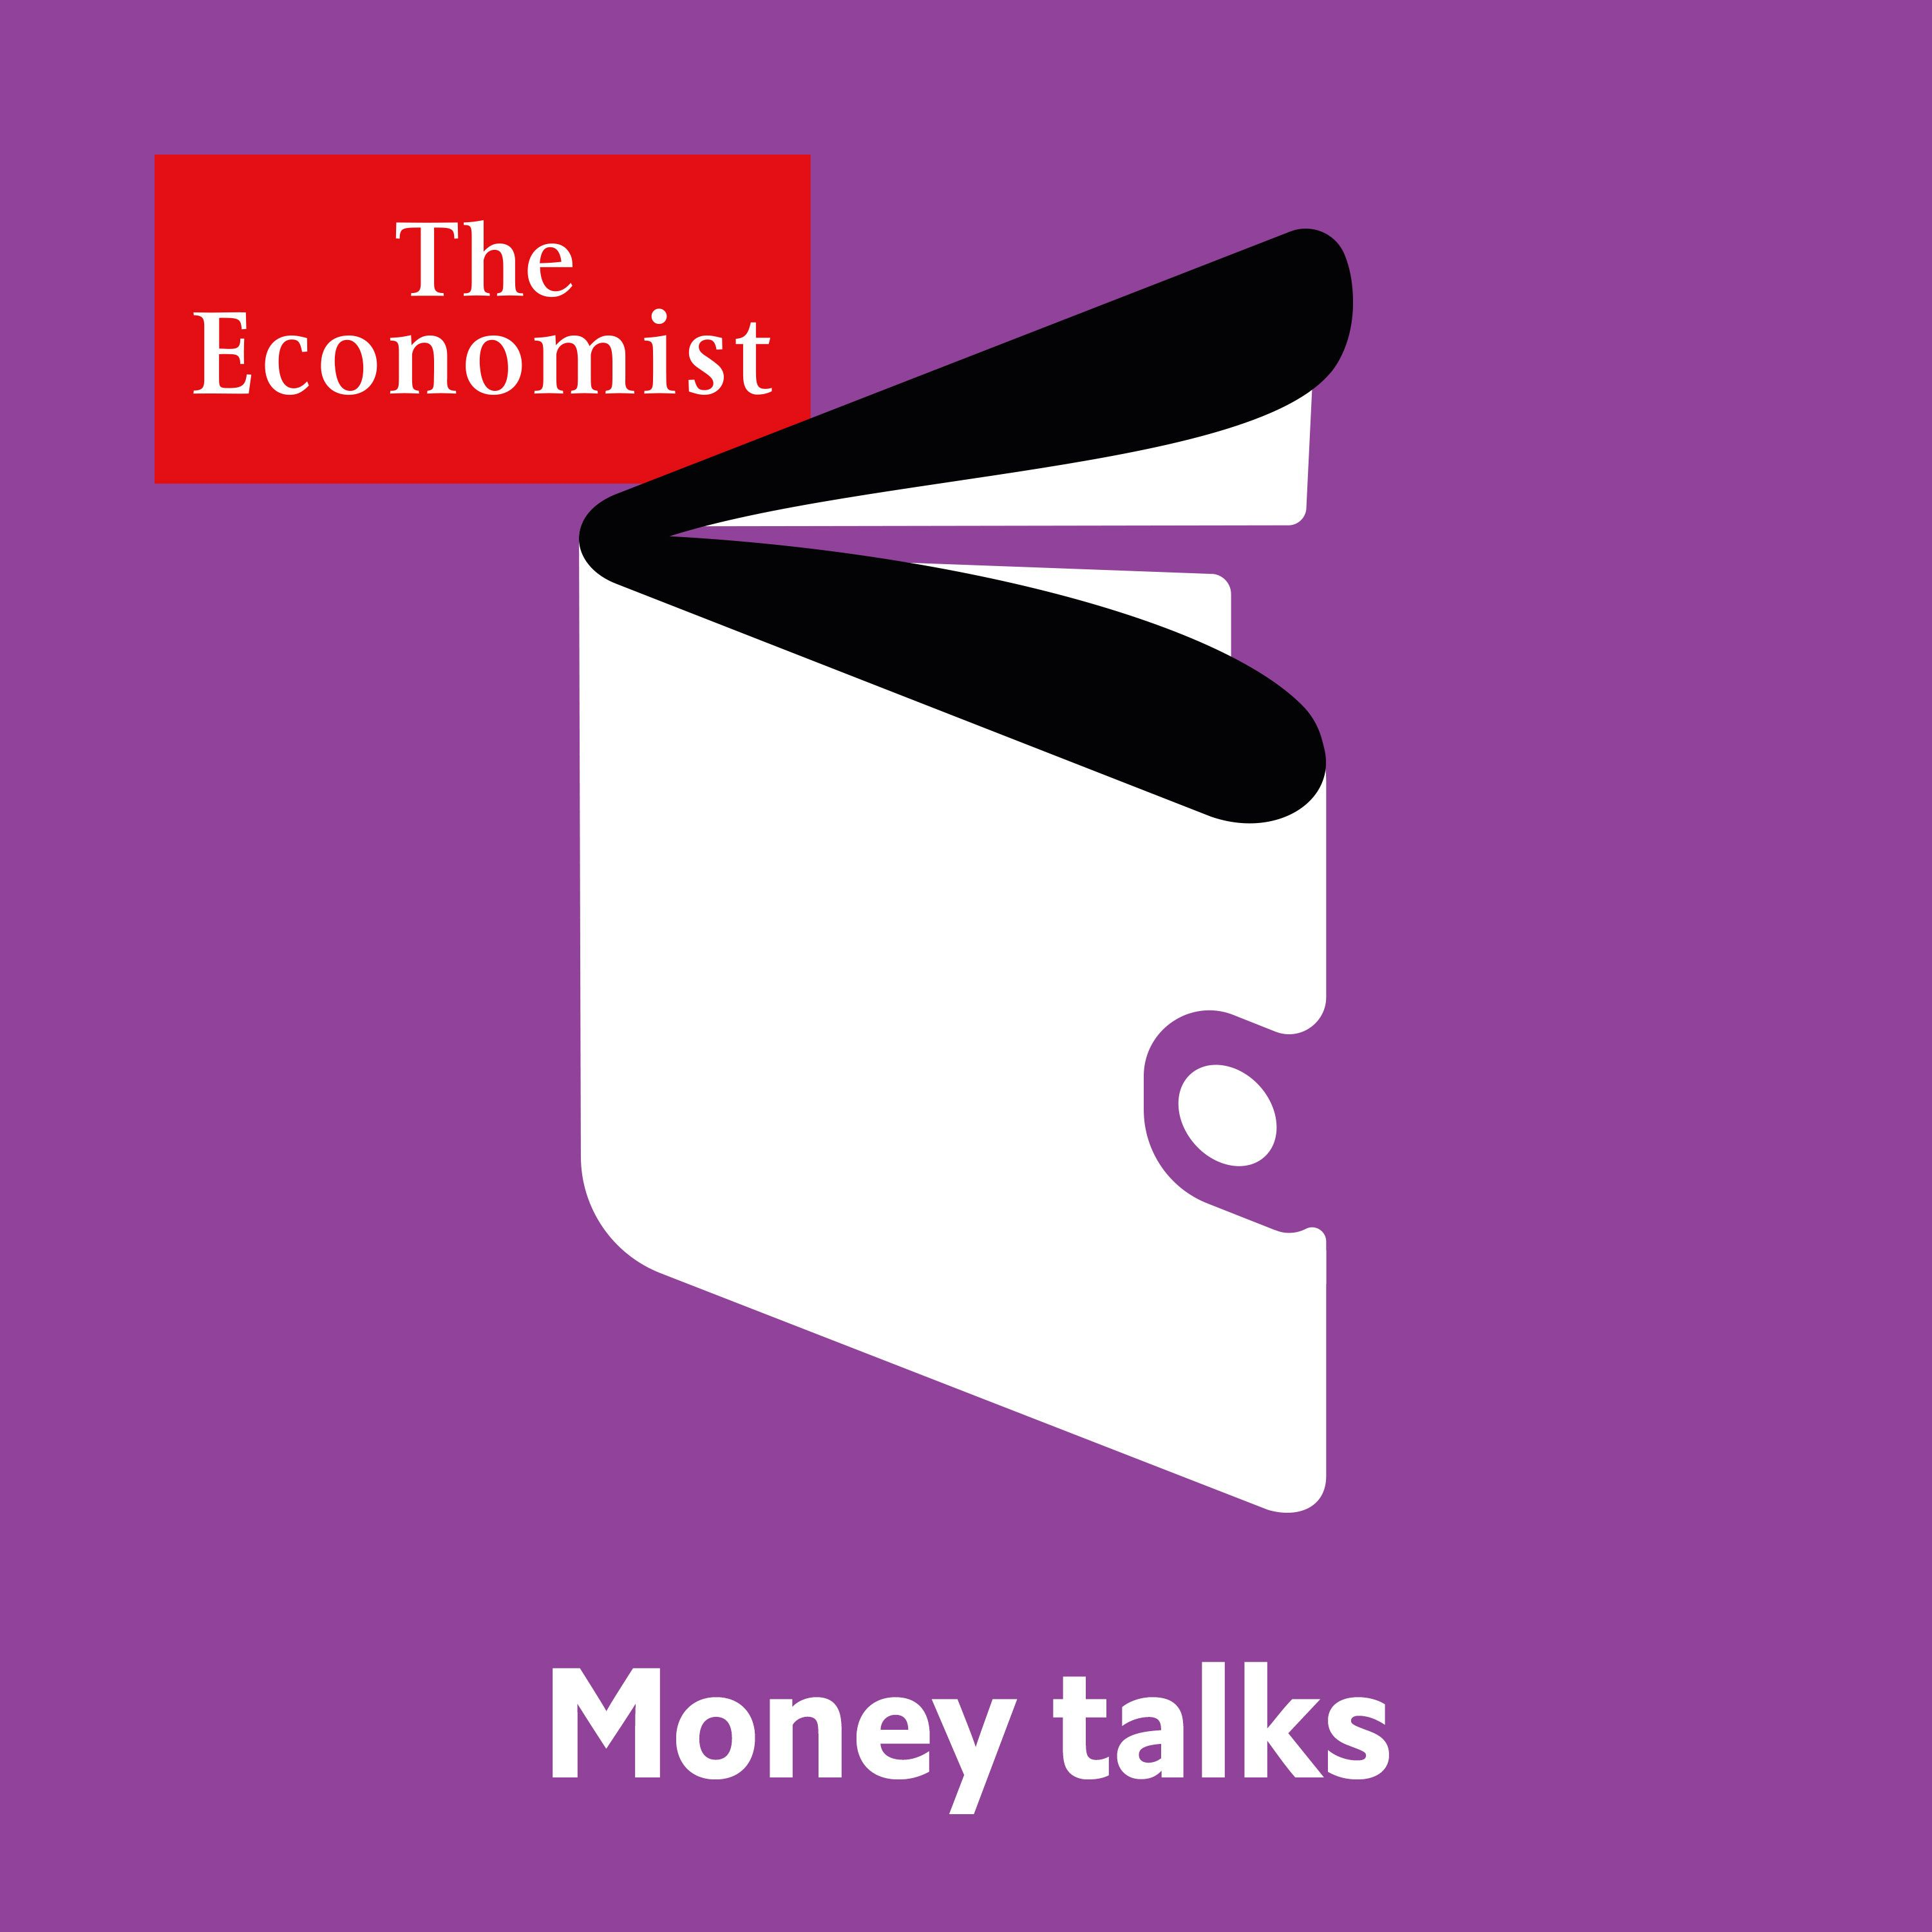 Money talks: Europe's bright spots